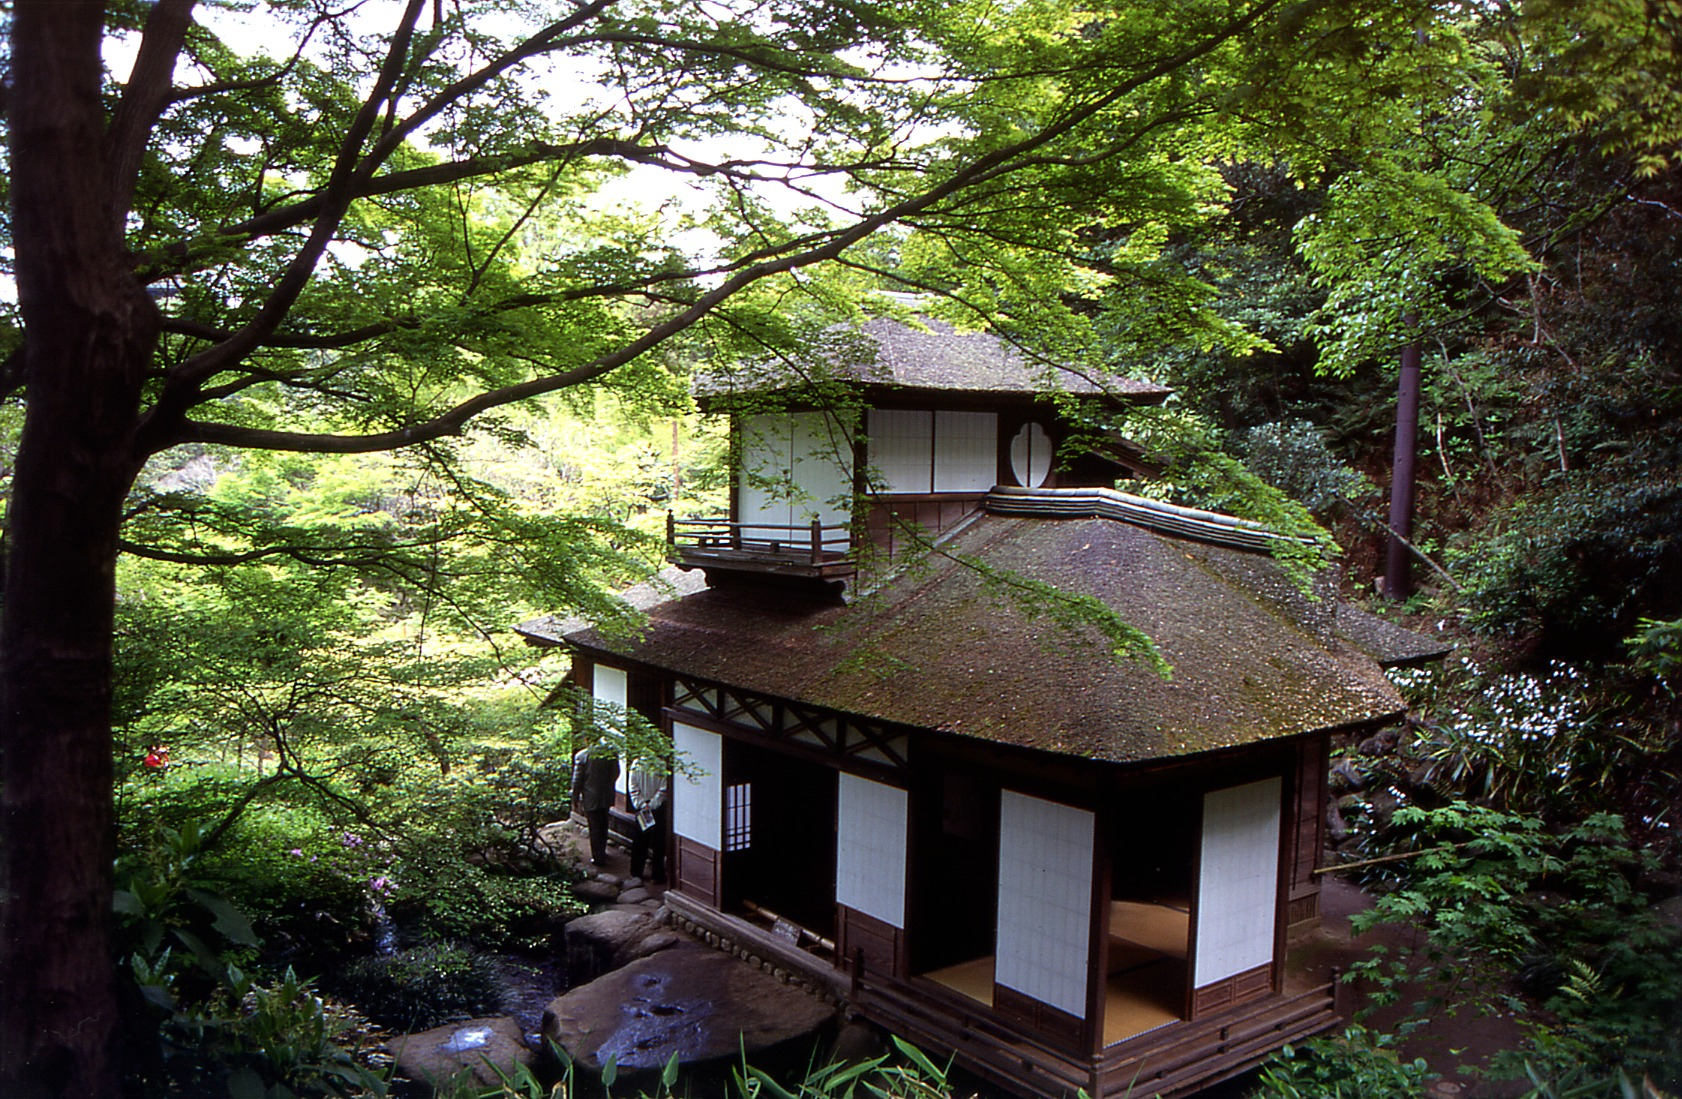 Historical buildings to open to the public in the spring (Shunsoro and Choshukaku, important cultural assets)